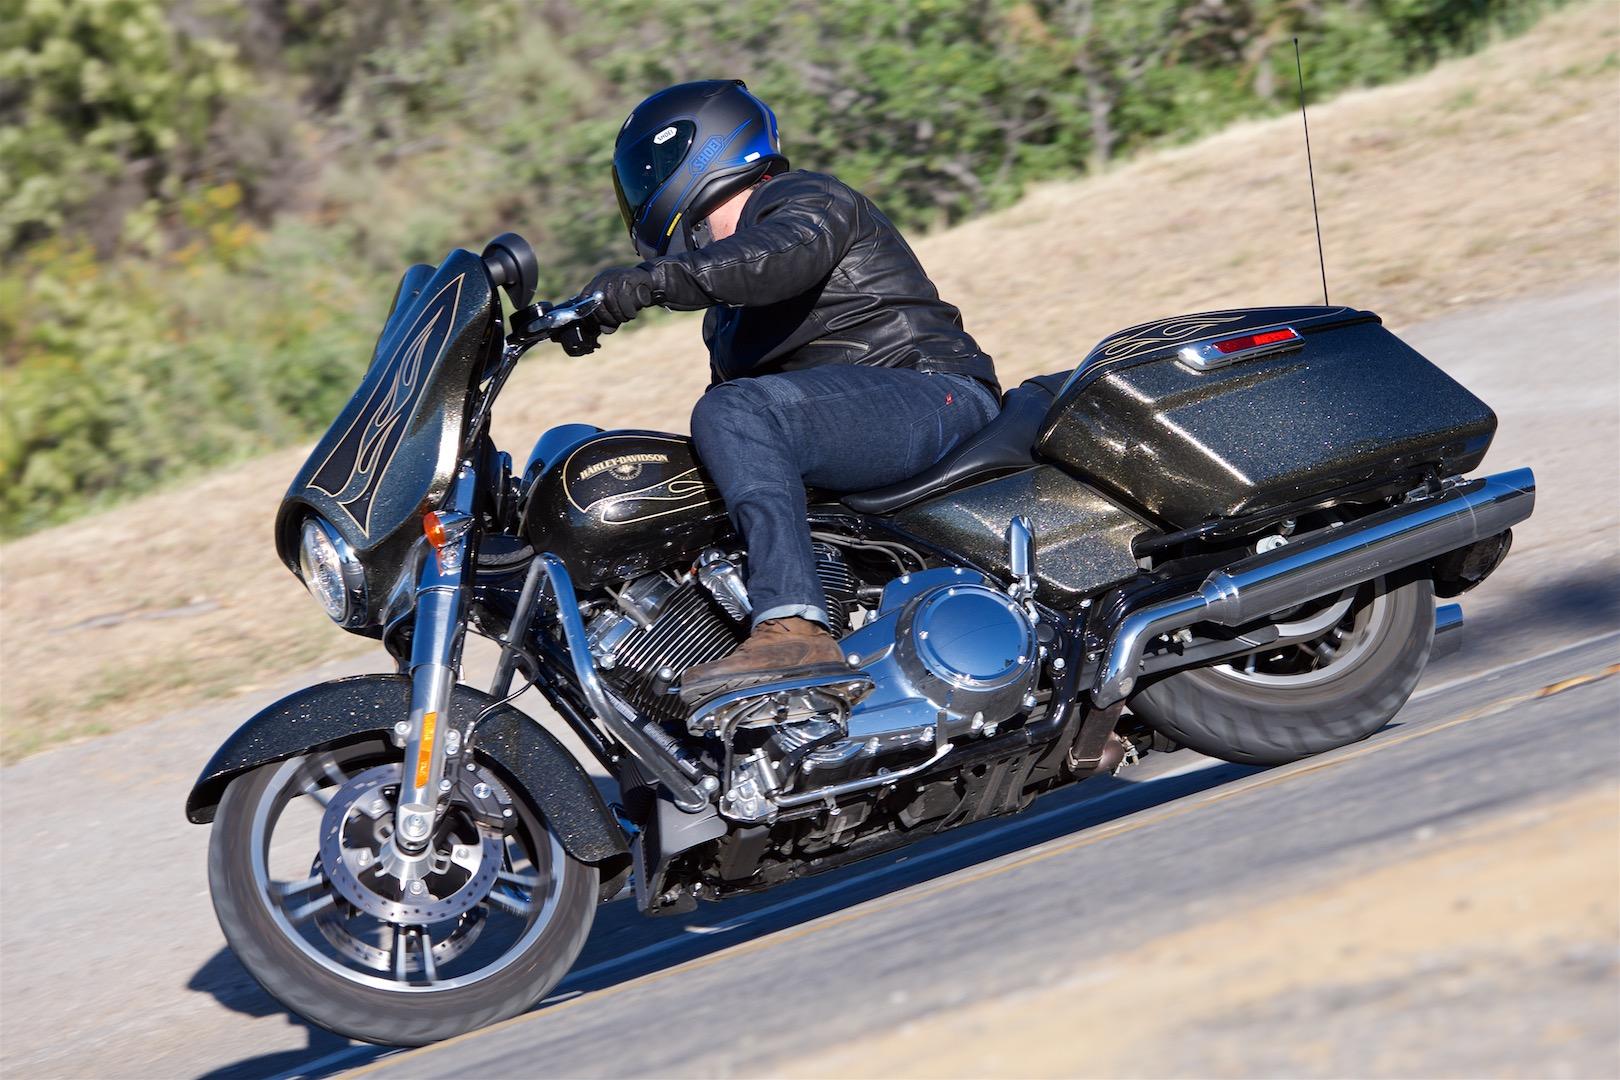 2017 harley davidson street glide special review 16 fast facts